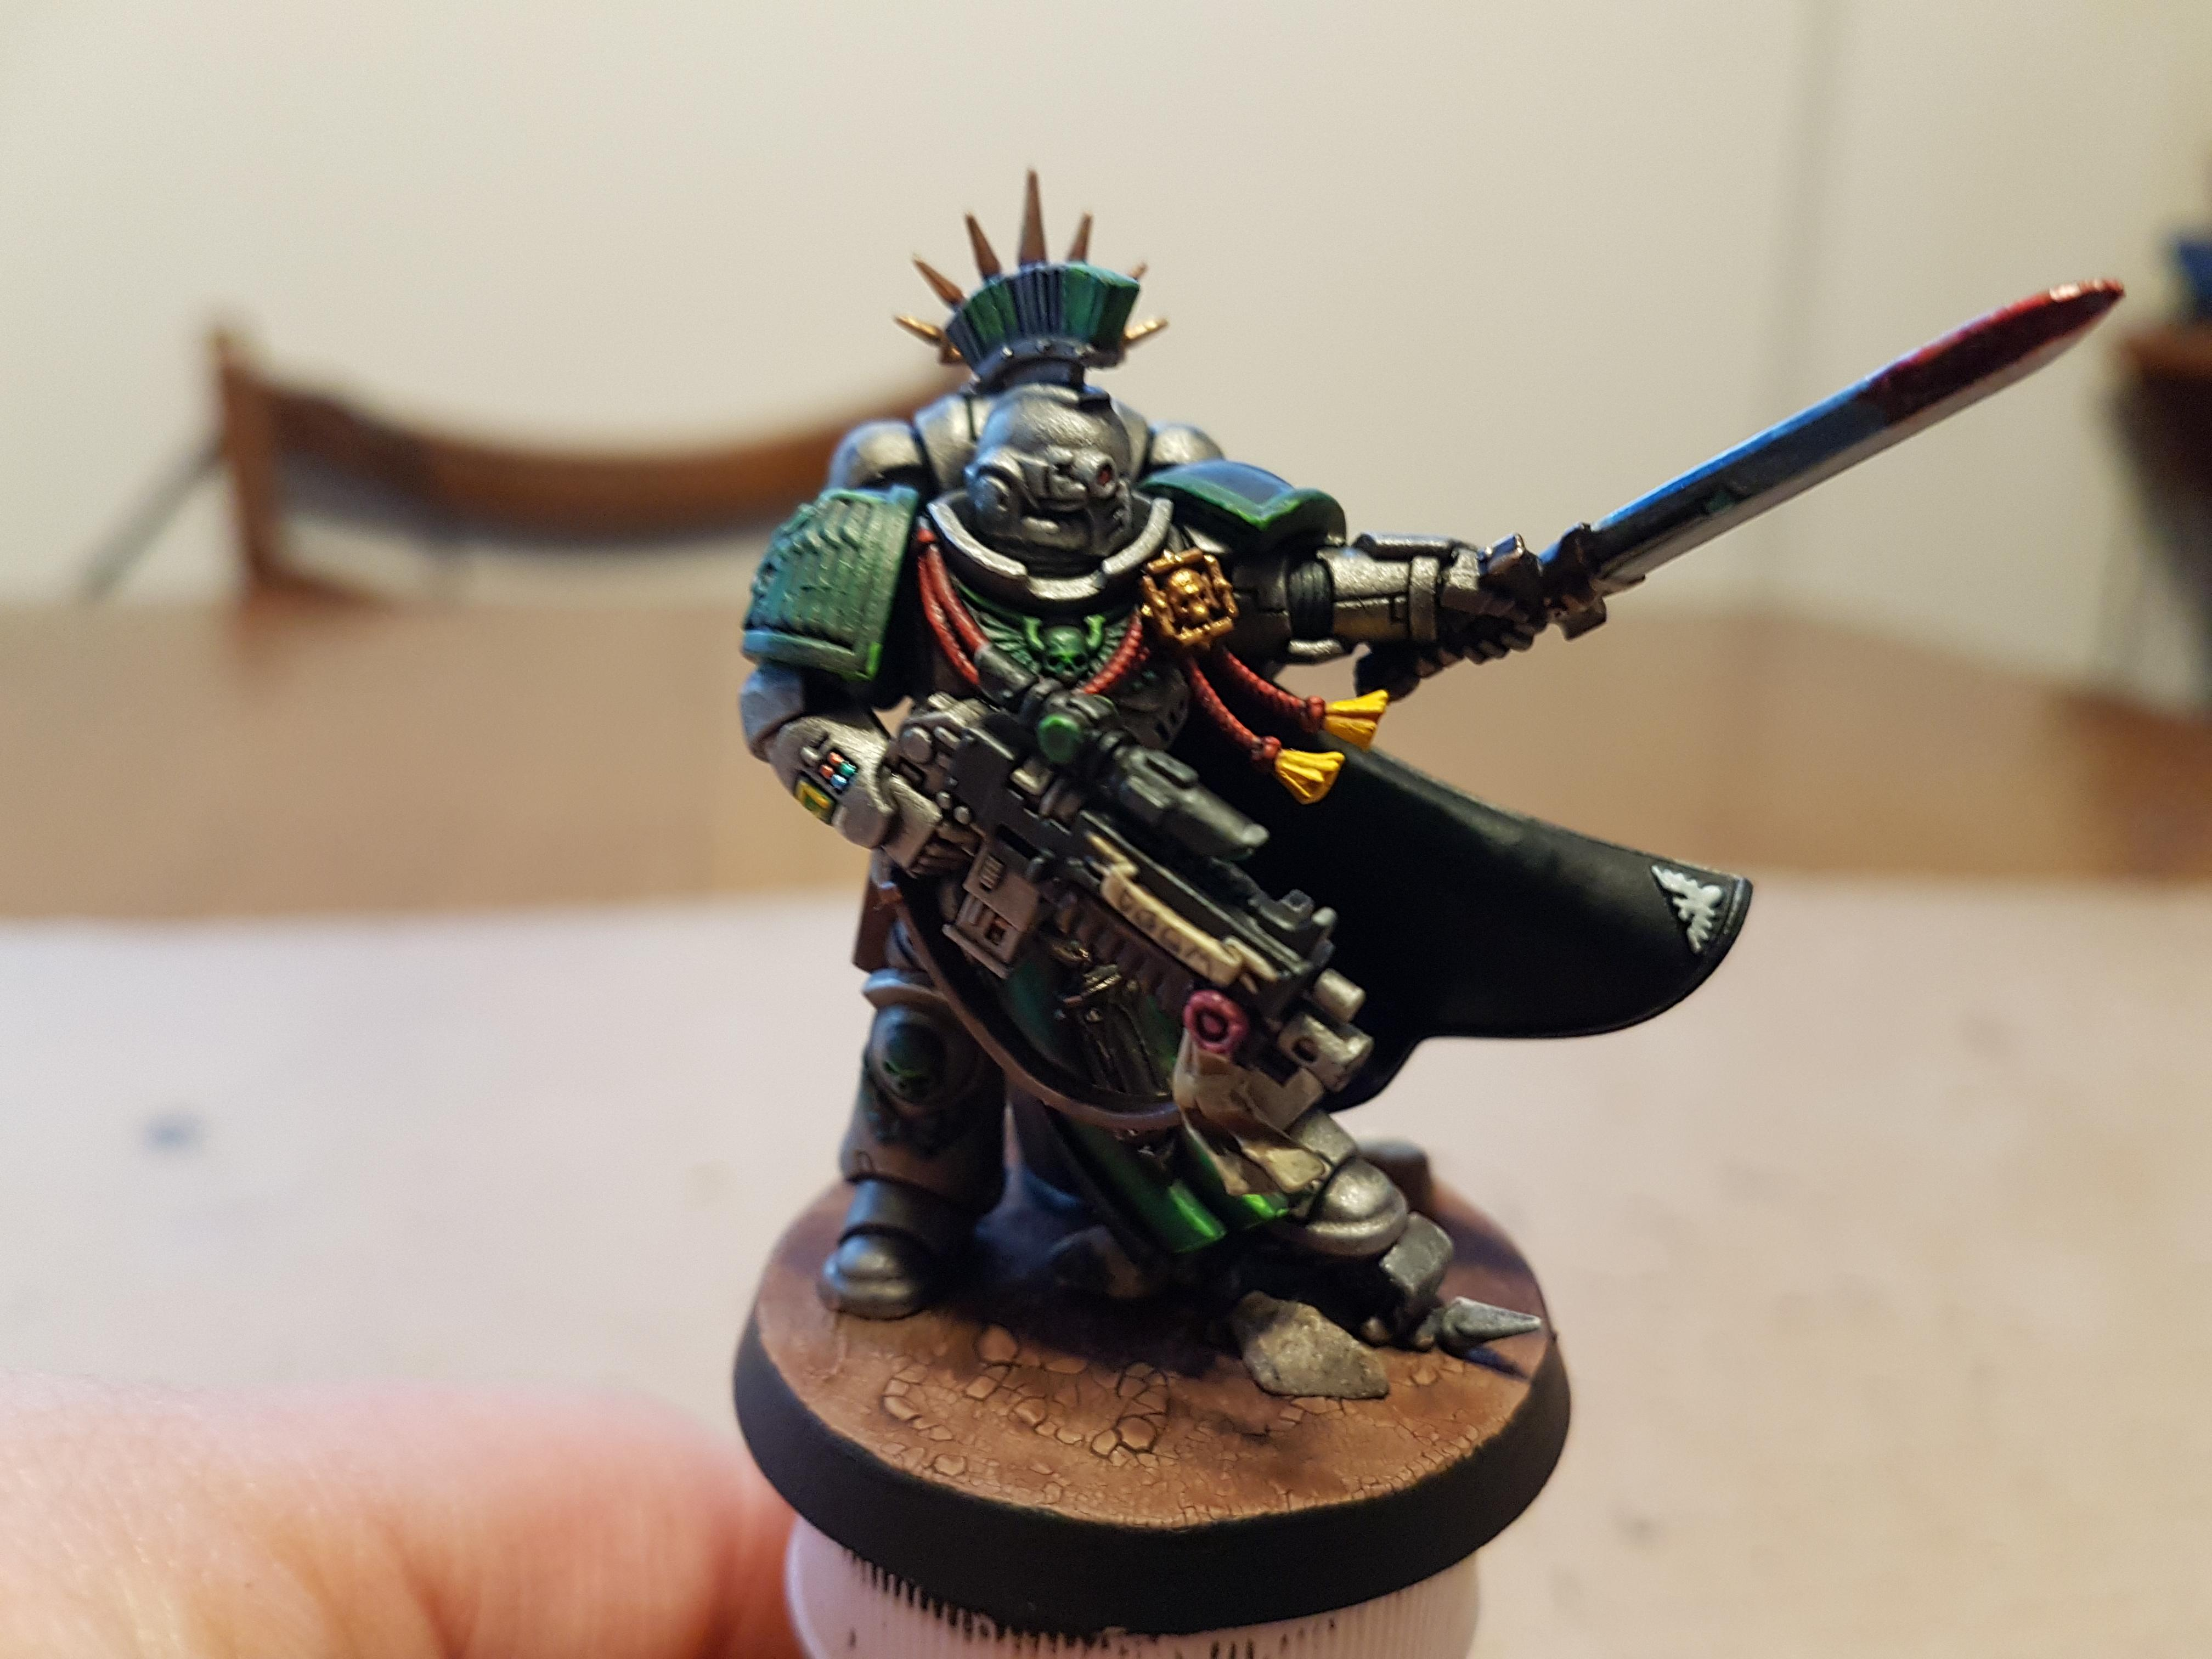 Captain, Cloak, Doom Legion, Iron Halo, Master-crafted Power Sword, Master-crafted Stalker Pattern Bolt Rifle, Power Sword, Primaris, Primaris Captain